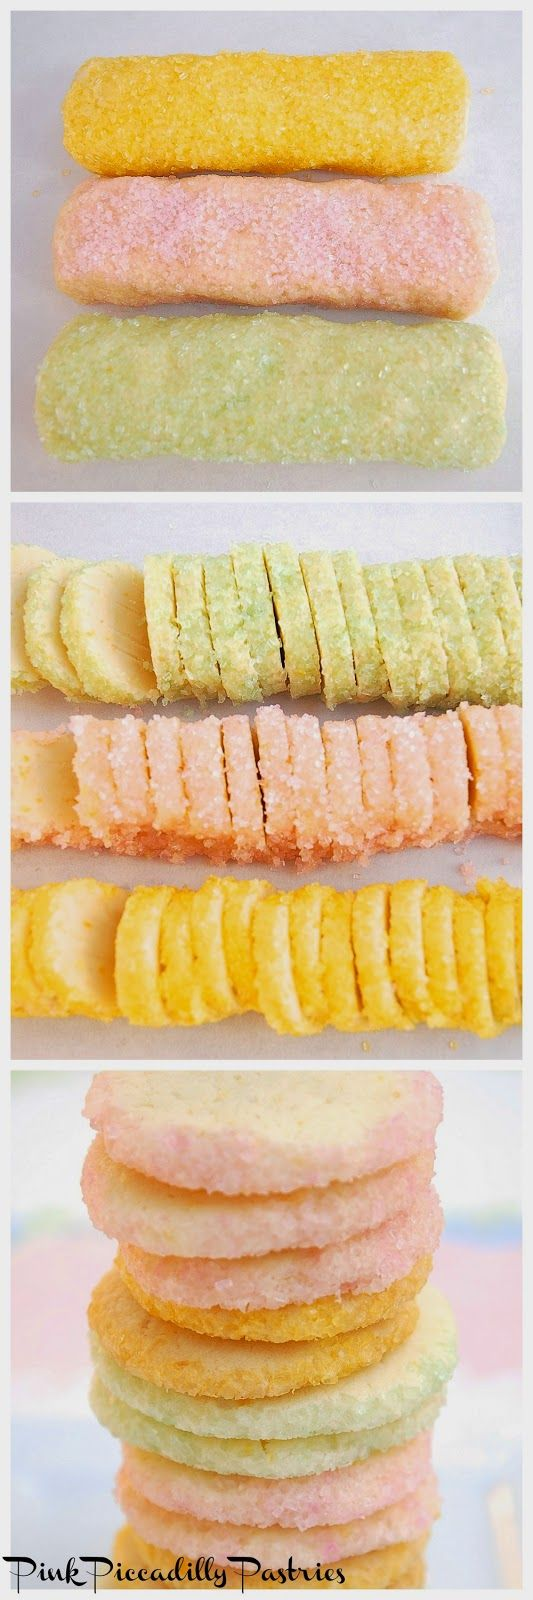 This weekend I tried Martha Stewart's  Lemon Icebox Cookies Recipe.      They were sooo good - light, lemony, buttery good!!    I cou...